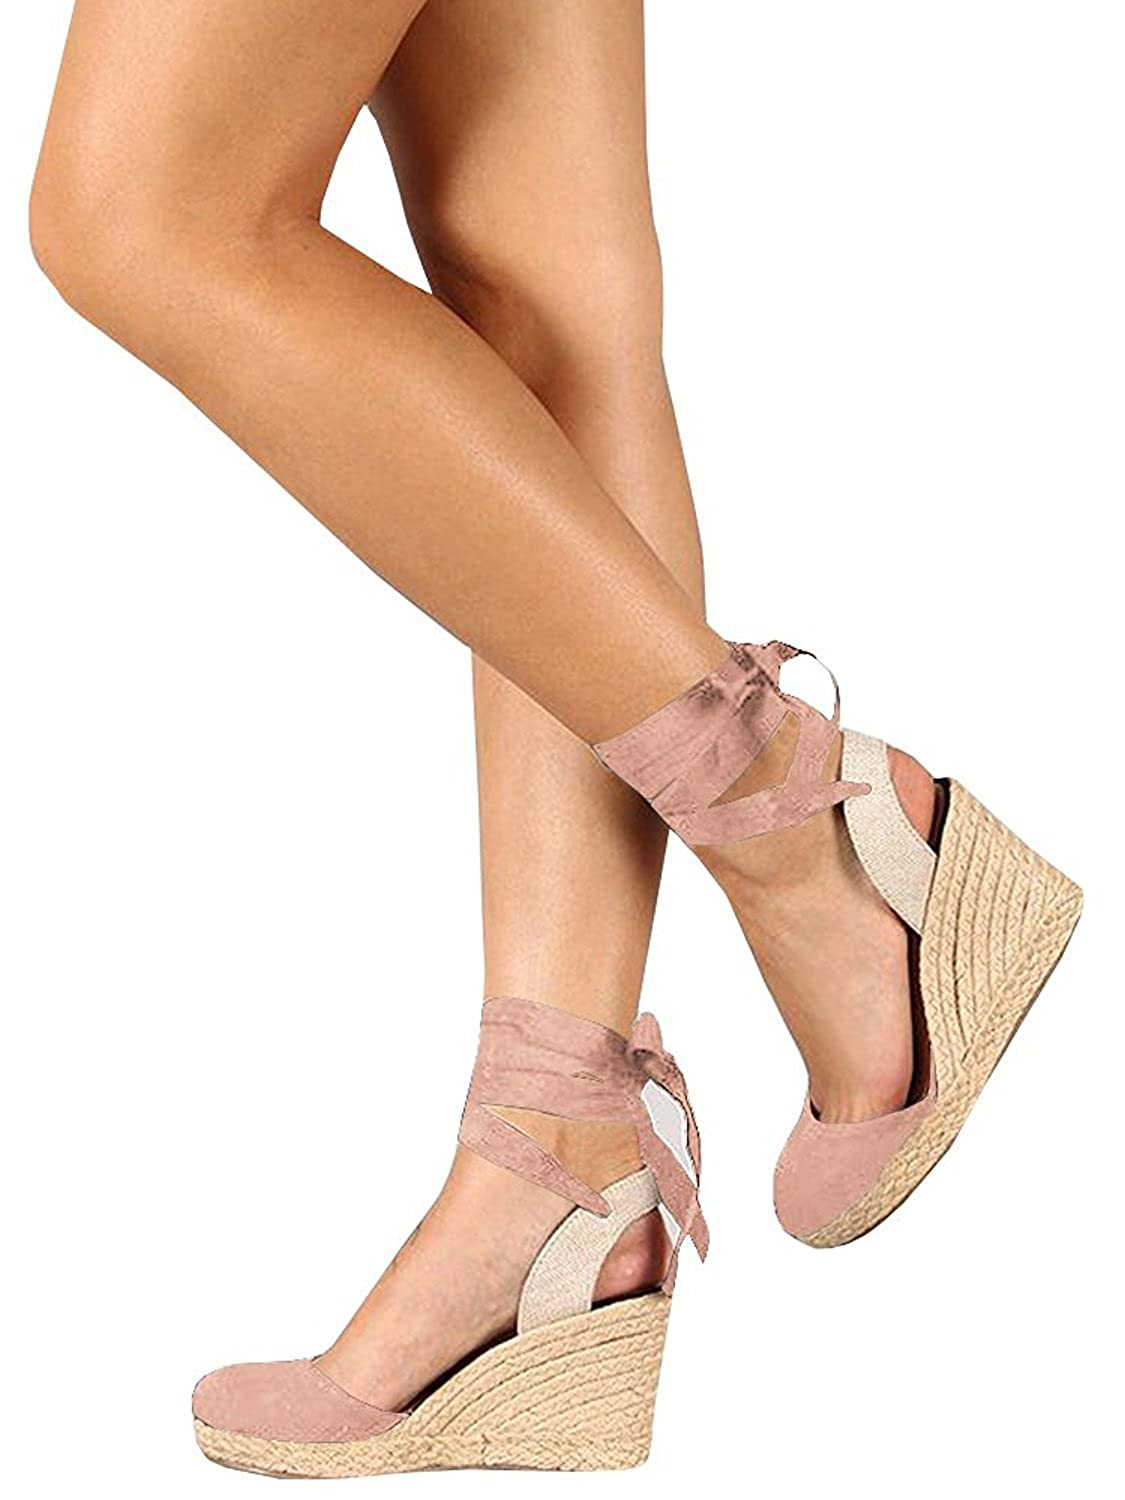 2d7857904 Amazon.com: Ermonn Womens Platform Espadrille Wedge Sandals Lace Up Closed  Toe Mid Heel Slingback Sandals: Clothing